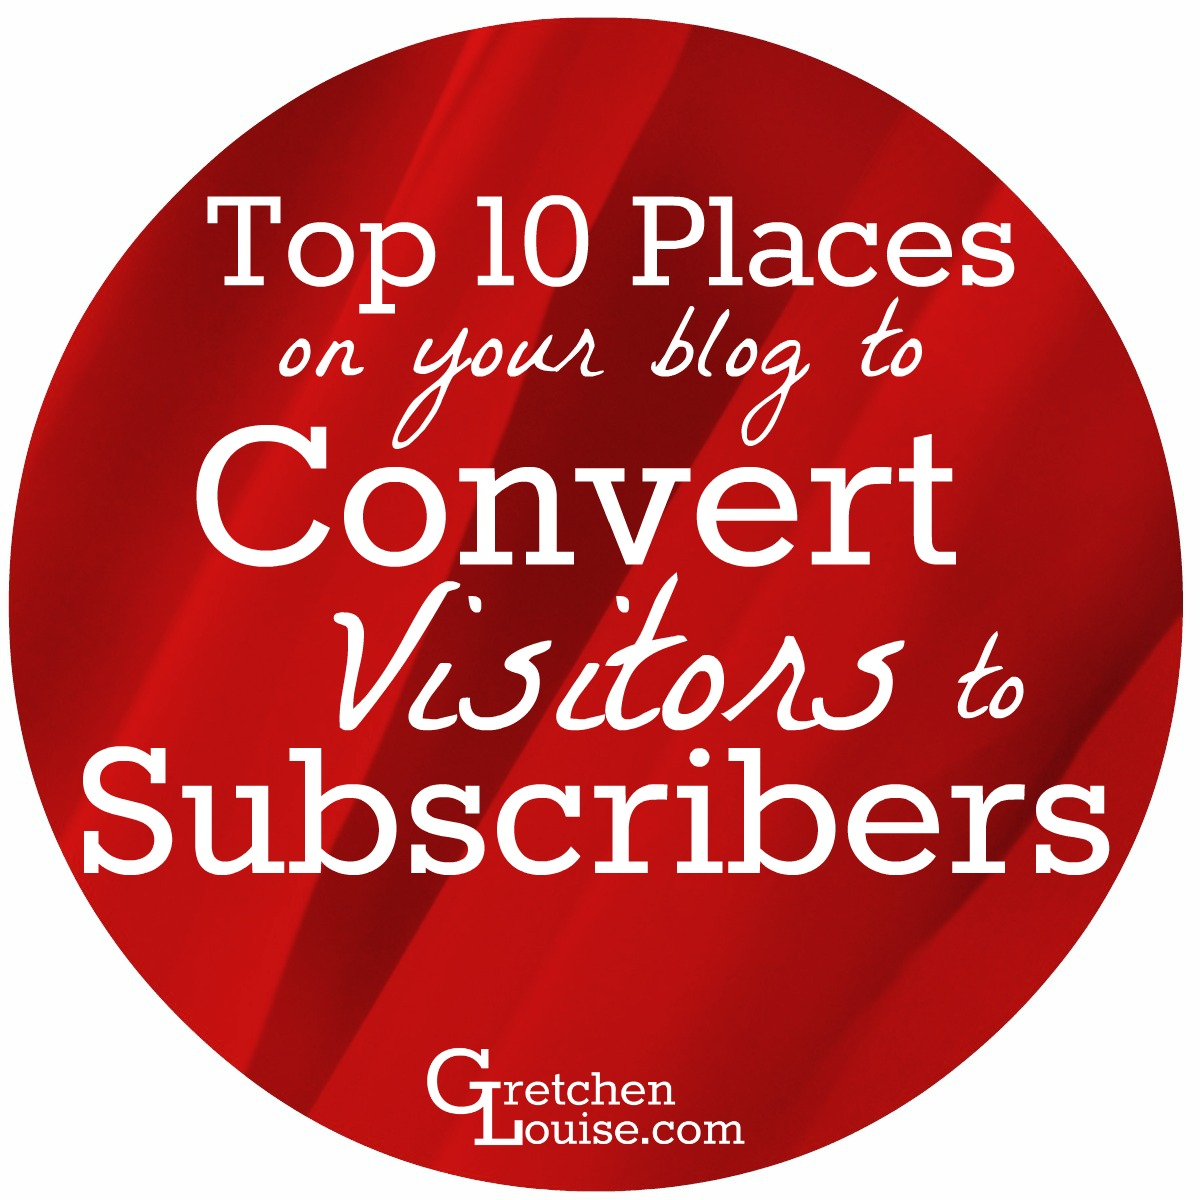 Top 10 Places On Your Blog to Convert Visitors to Subscribers